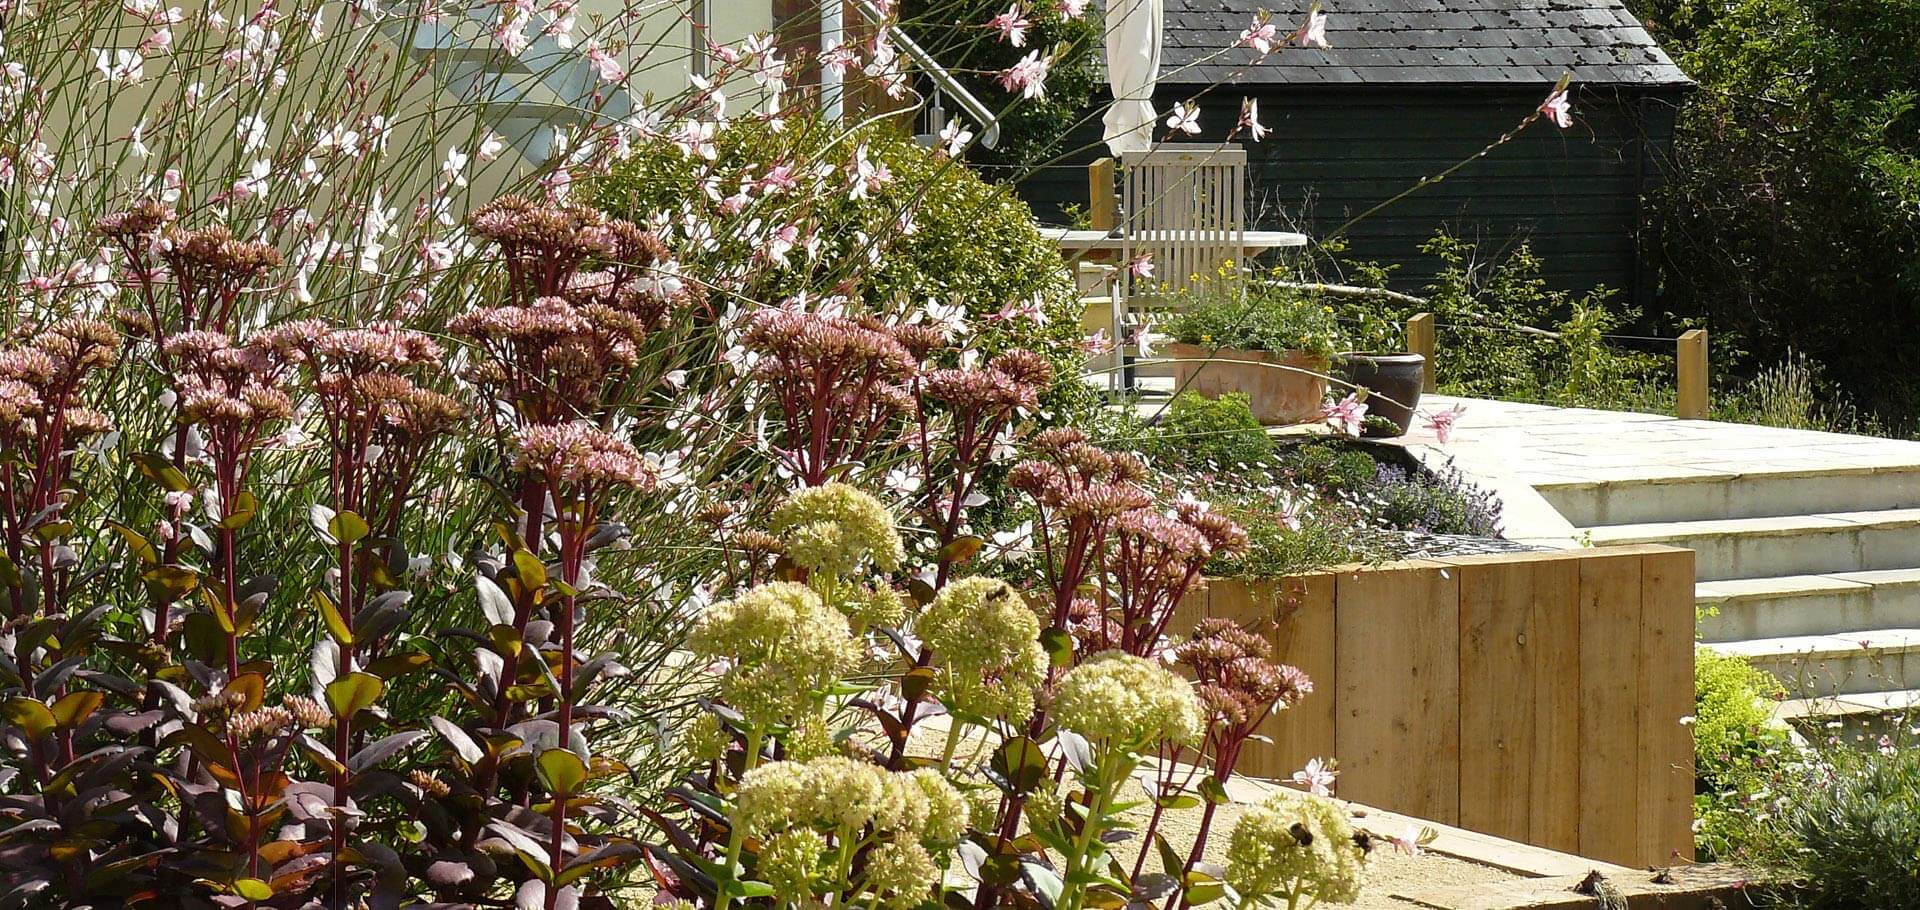 A productive terraced garden in Devon